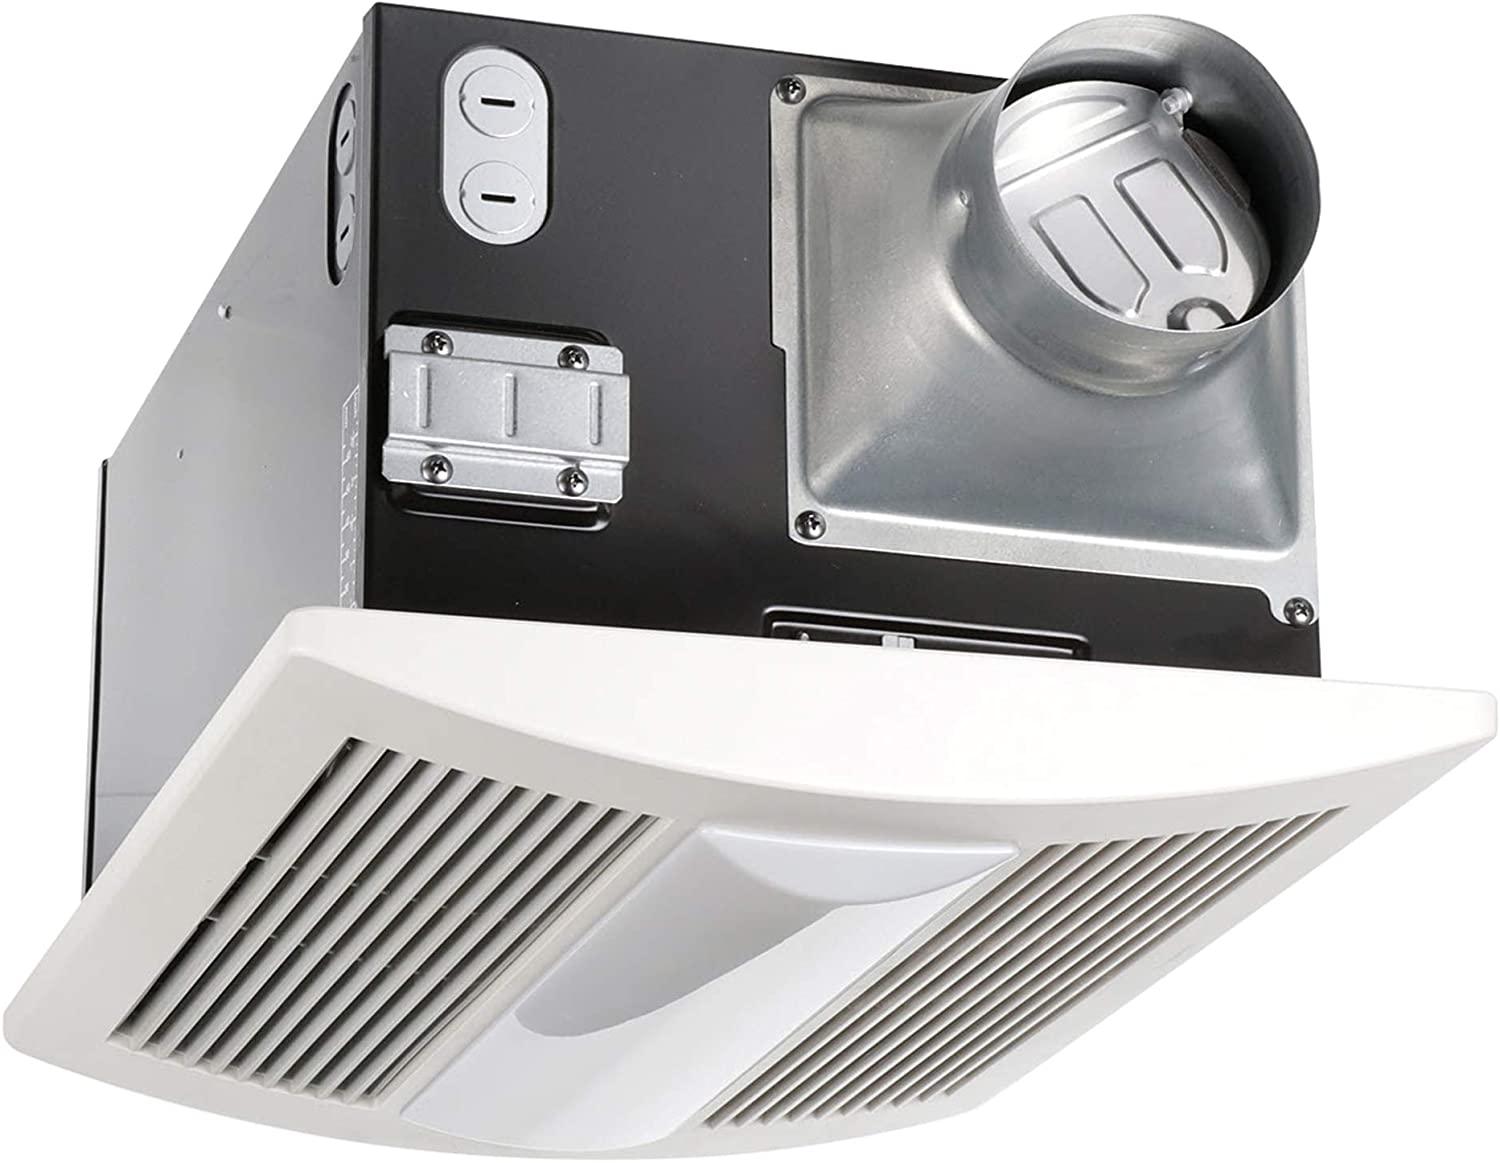 5 Bathroom Exhaust Fans With Light And Heater Features ...